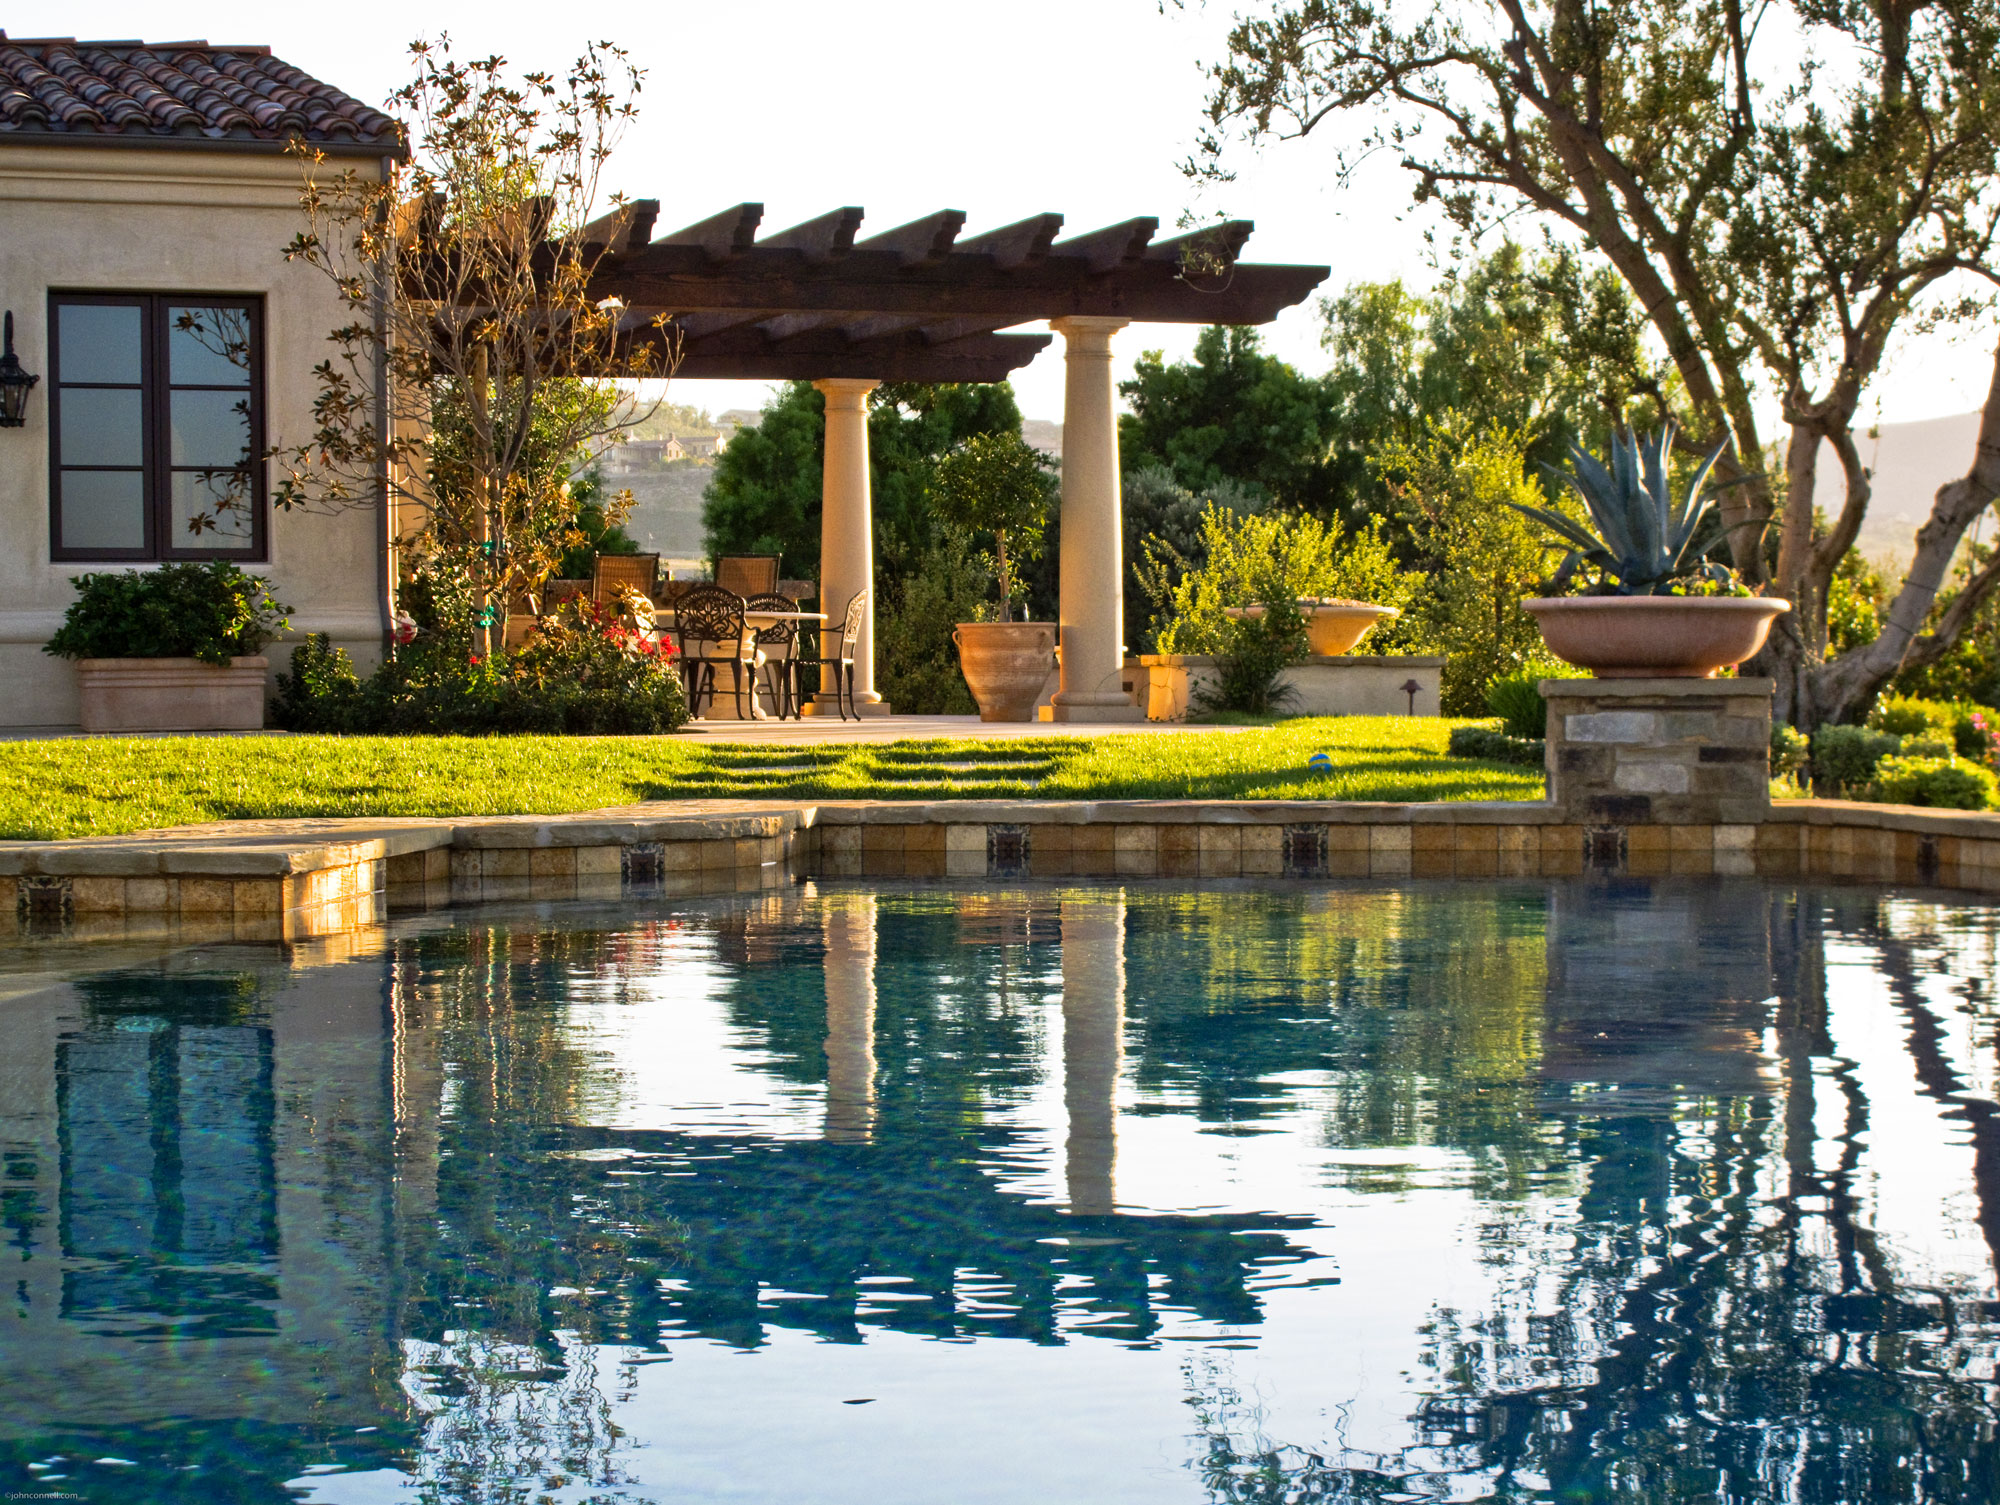 Shady Canyon - Andalusian Revival Pool by Oatman Architects